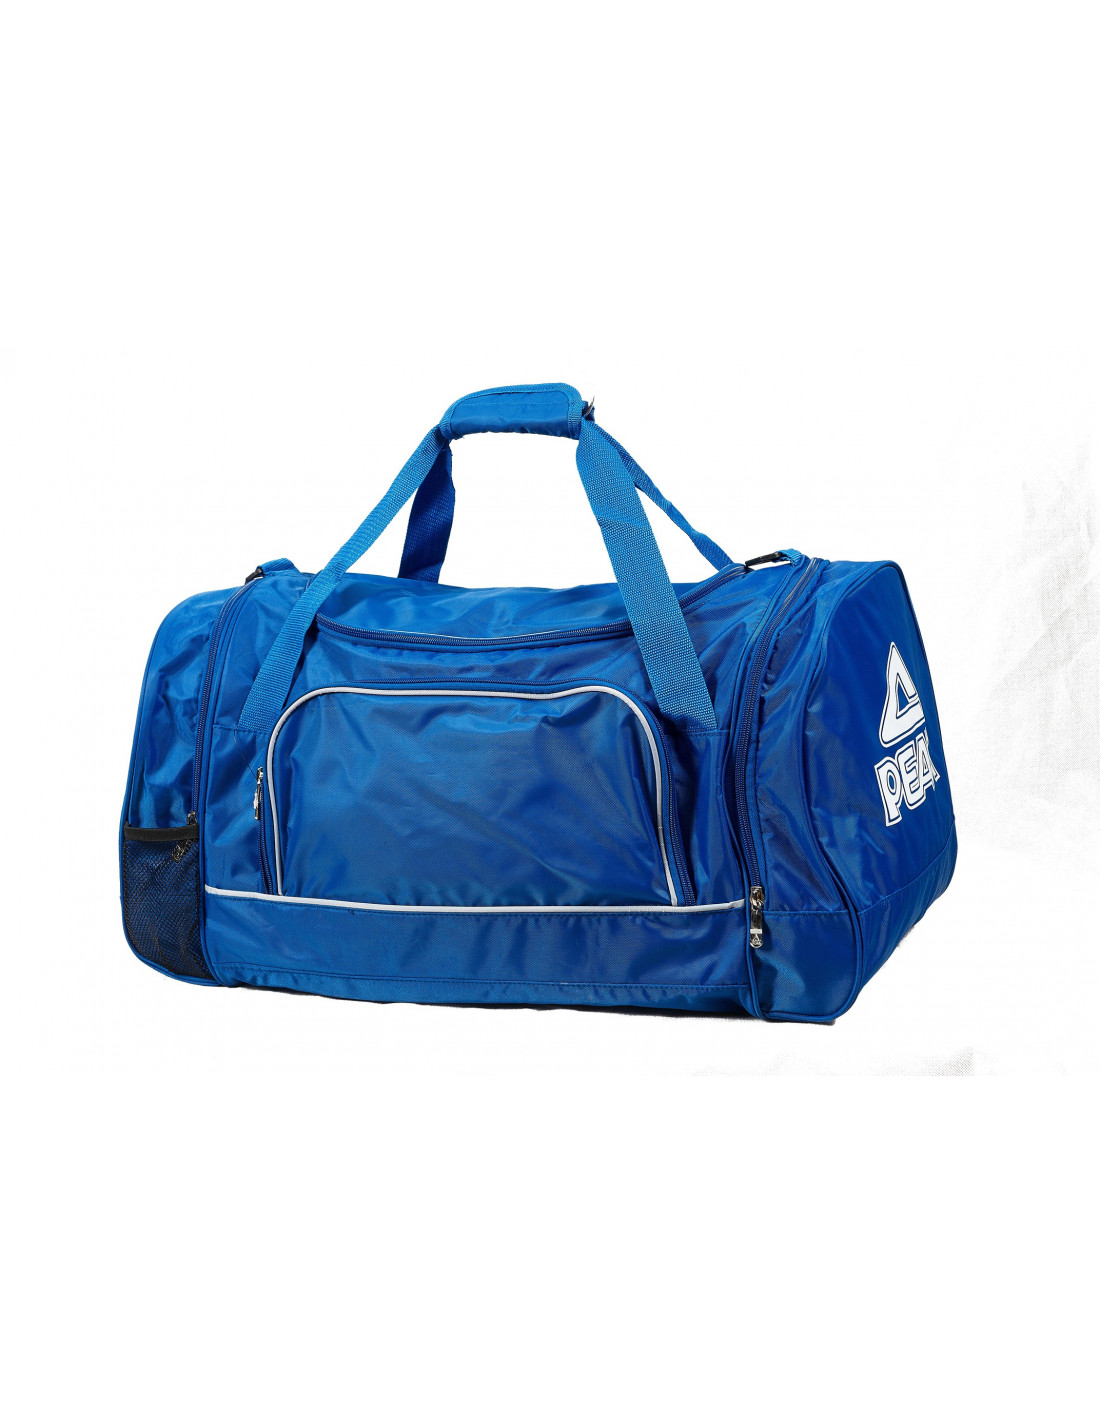 peak sports france peak training bag sac de sport bleu peak. Black Bedroom Furniture Sets. Home Design Ideas